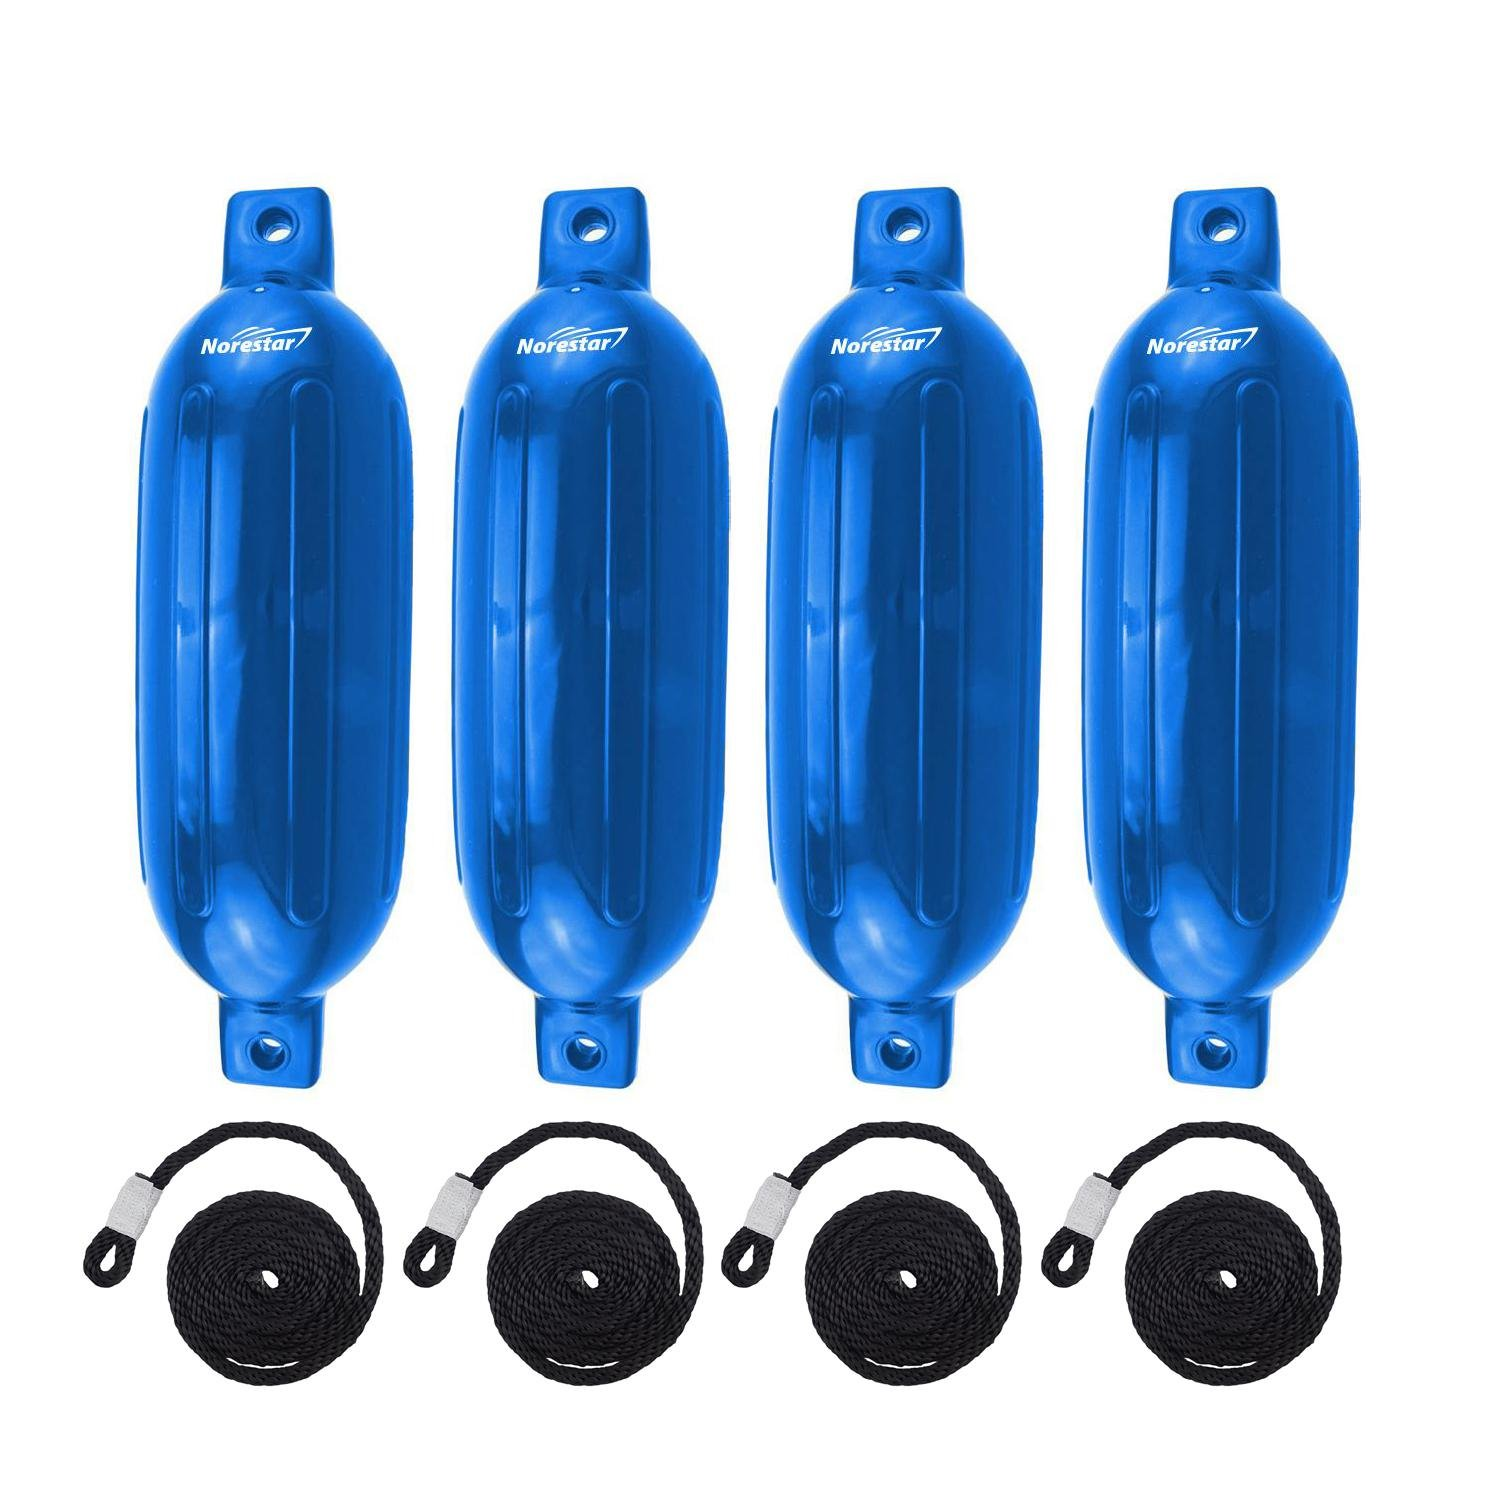 Norestar 4-Pack, 8.5'' x 27'' Ribbed Fender Deflated with 4 Fender Lines for Boat or Dock (Blue)